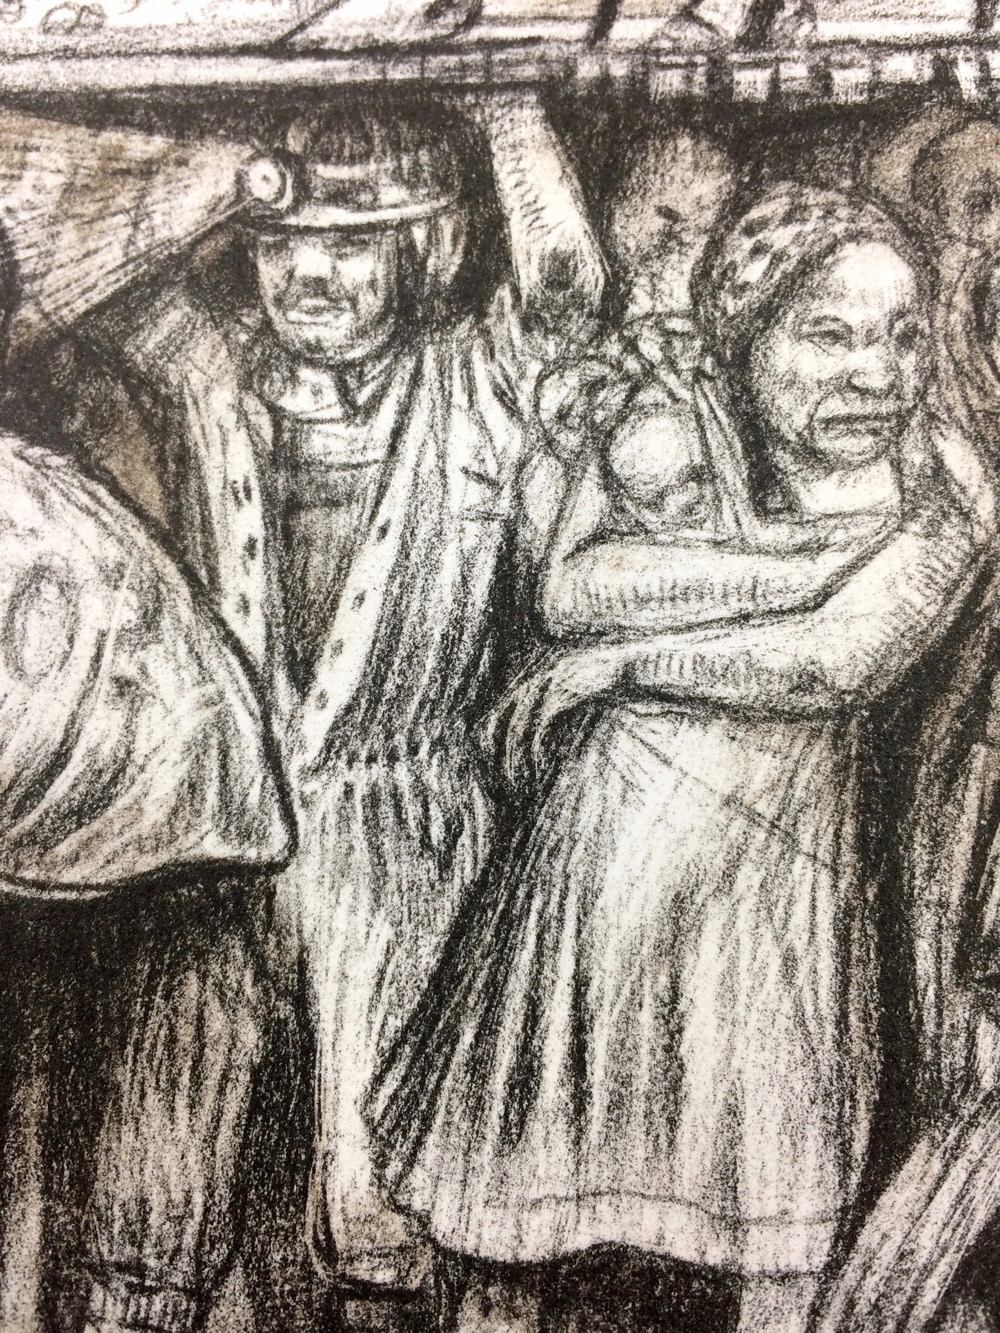 Detail of print showing a miner and a woman holding babies